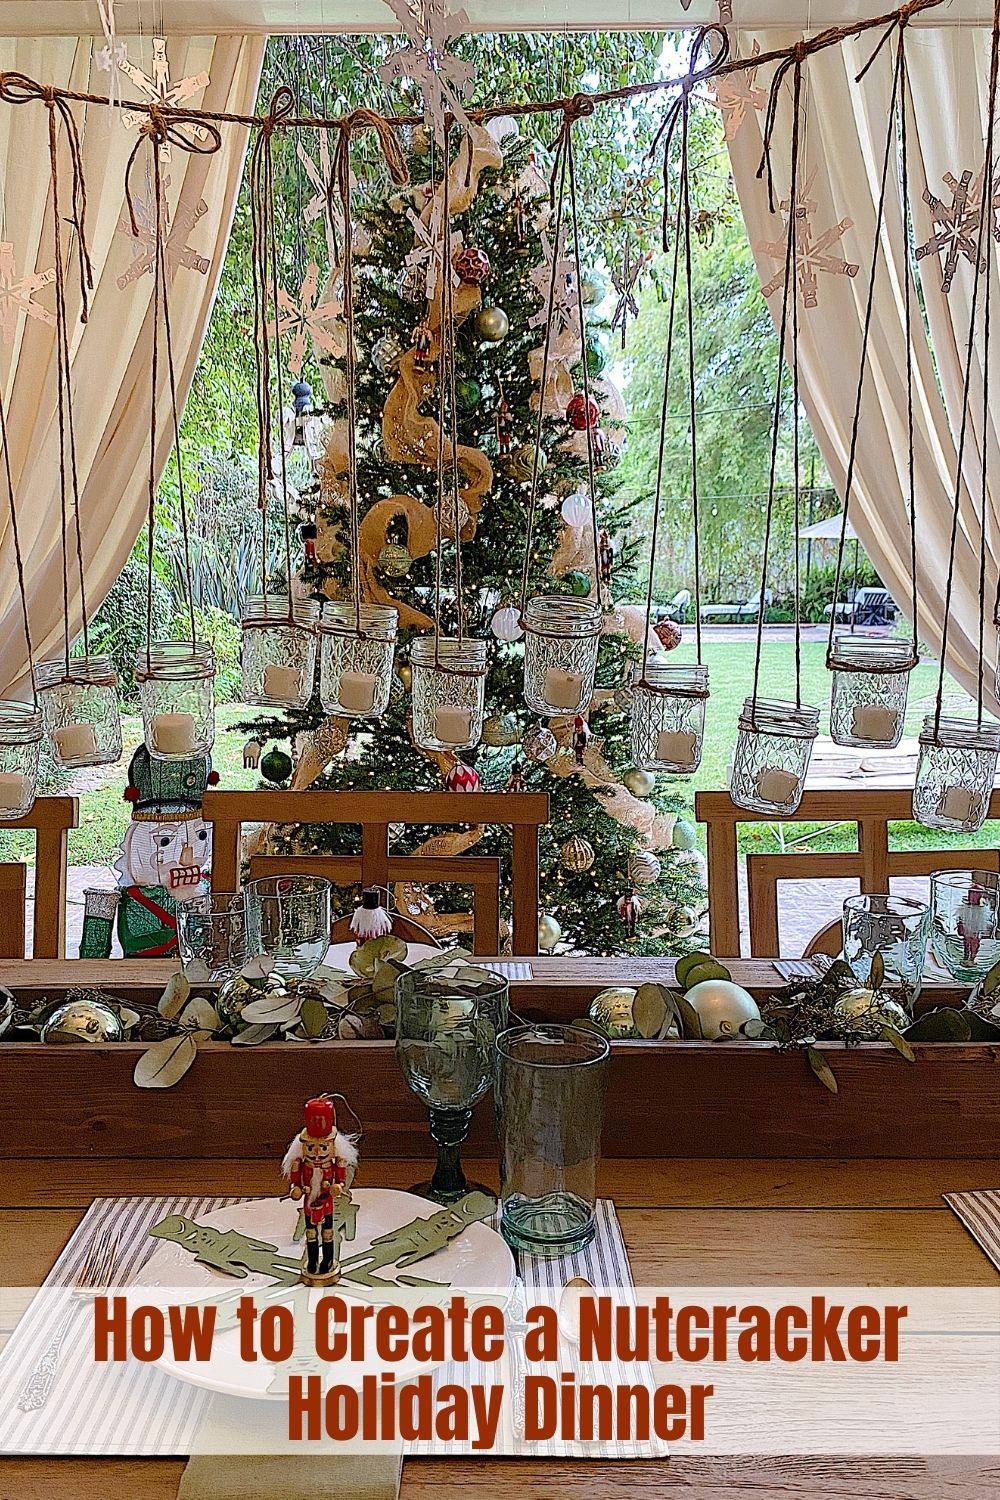 I am thrilled that my Nutcracker themed Christmas dinner is featured on the Home Depot Blog. I loved creating this dining space and hope you will enjoy my ideas for Christmas dinner.